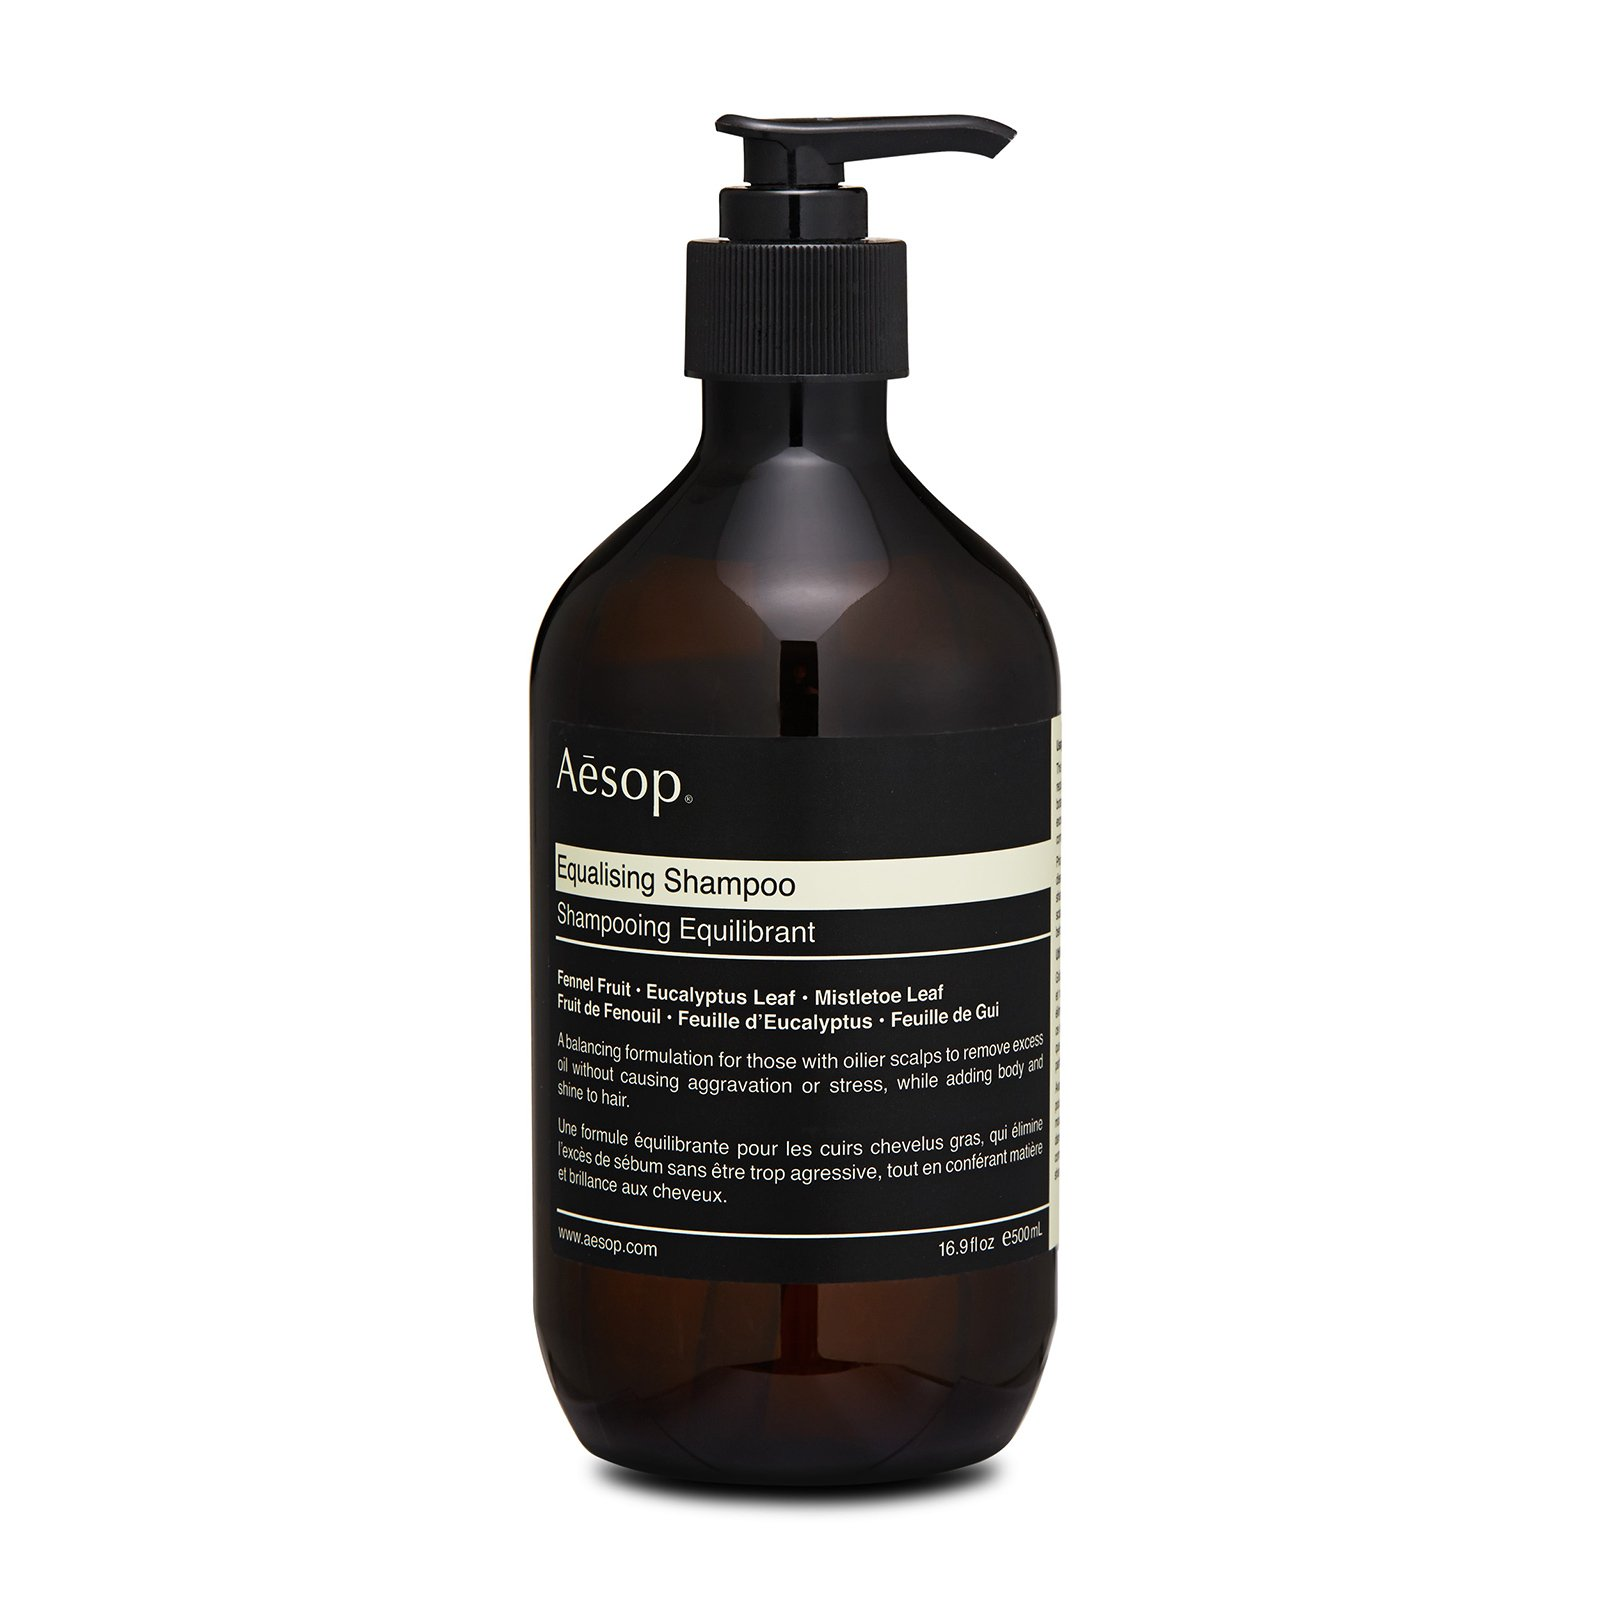 Aesop Equalising Shampoo has the following features: Gently astringent botanicals absorb excess oil without irritating or aggravating the scalp, simultaneously delivering body and shine to hair. Leaves your scalp completely cleansed, and hair will be softened and refreshed.Contains a blend of cleansing and nourishing botanical extracts, including Fennel Fruit, to wash away excess oil without stripping scalp. Formulated with eucalyptus leaf to promote blood vessel constriction. Hence promotes follicle stimulation and hair development. Improves shine, thickness and overall health.